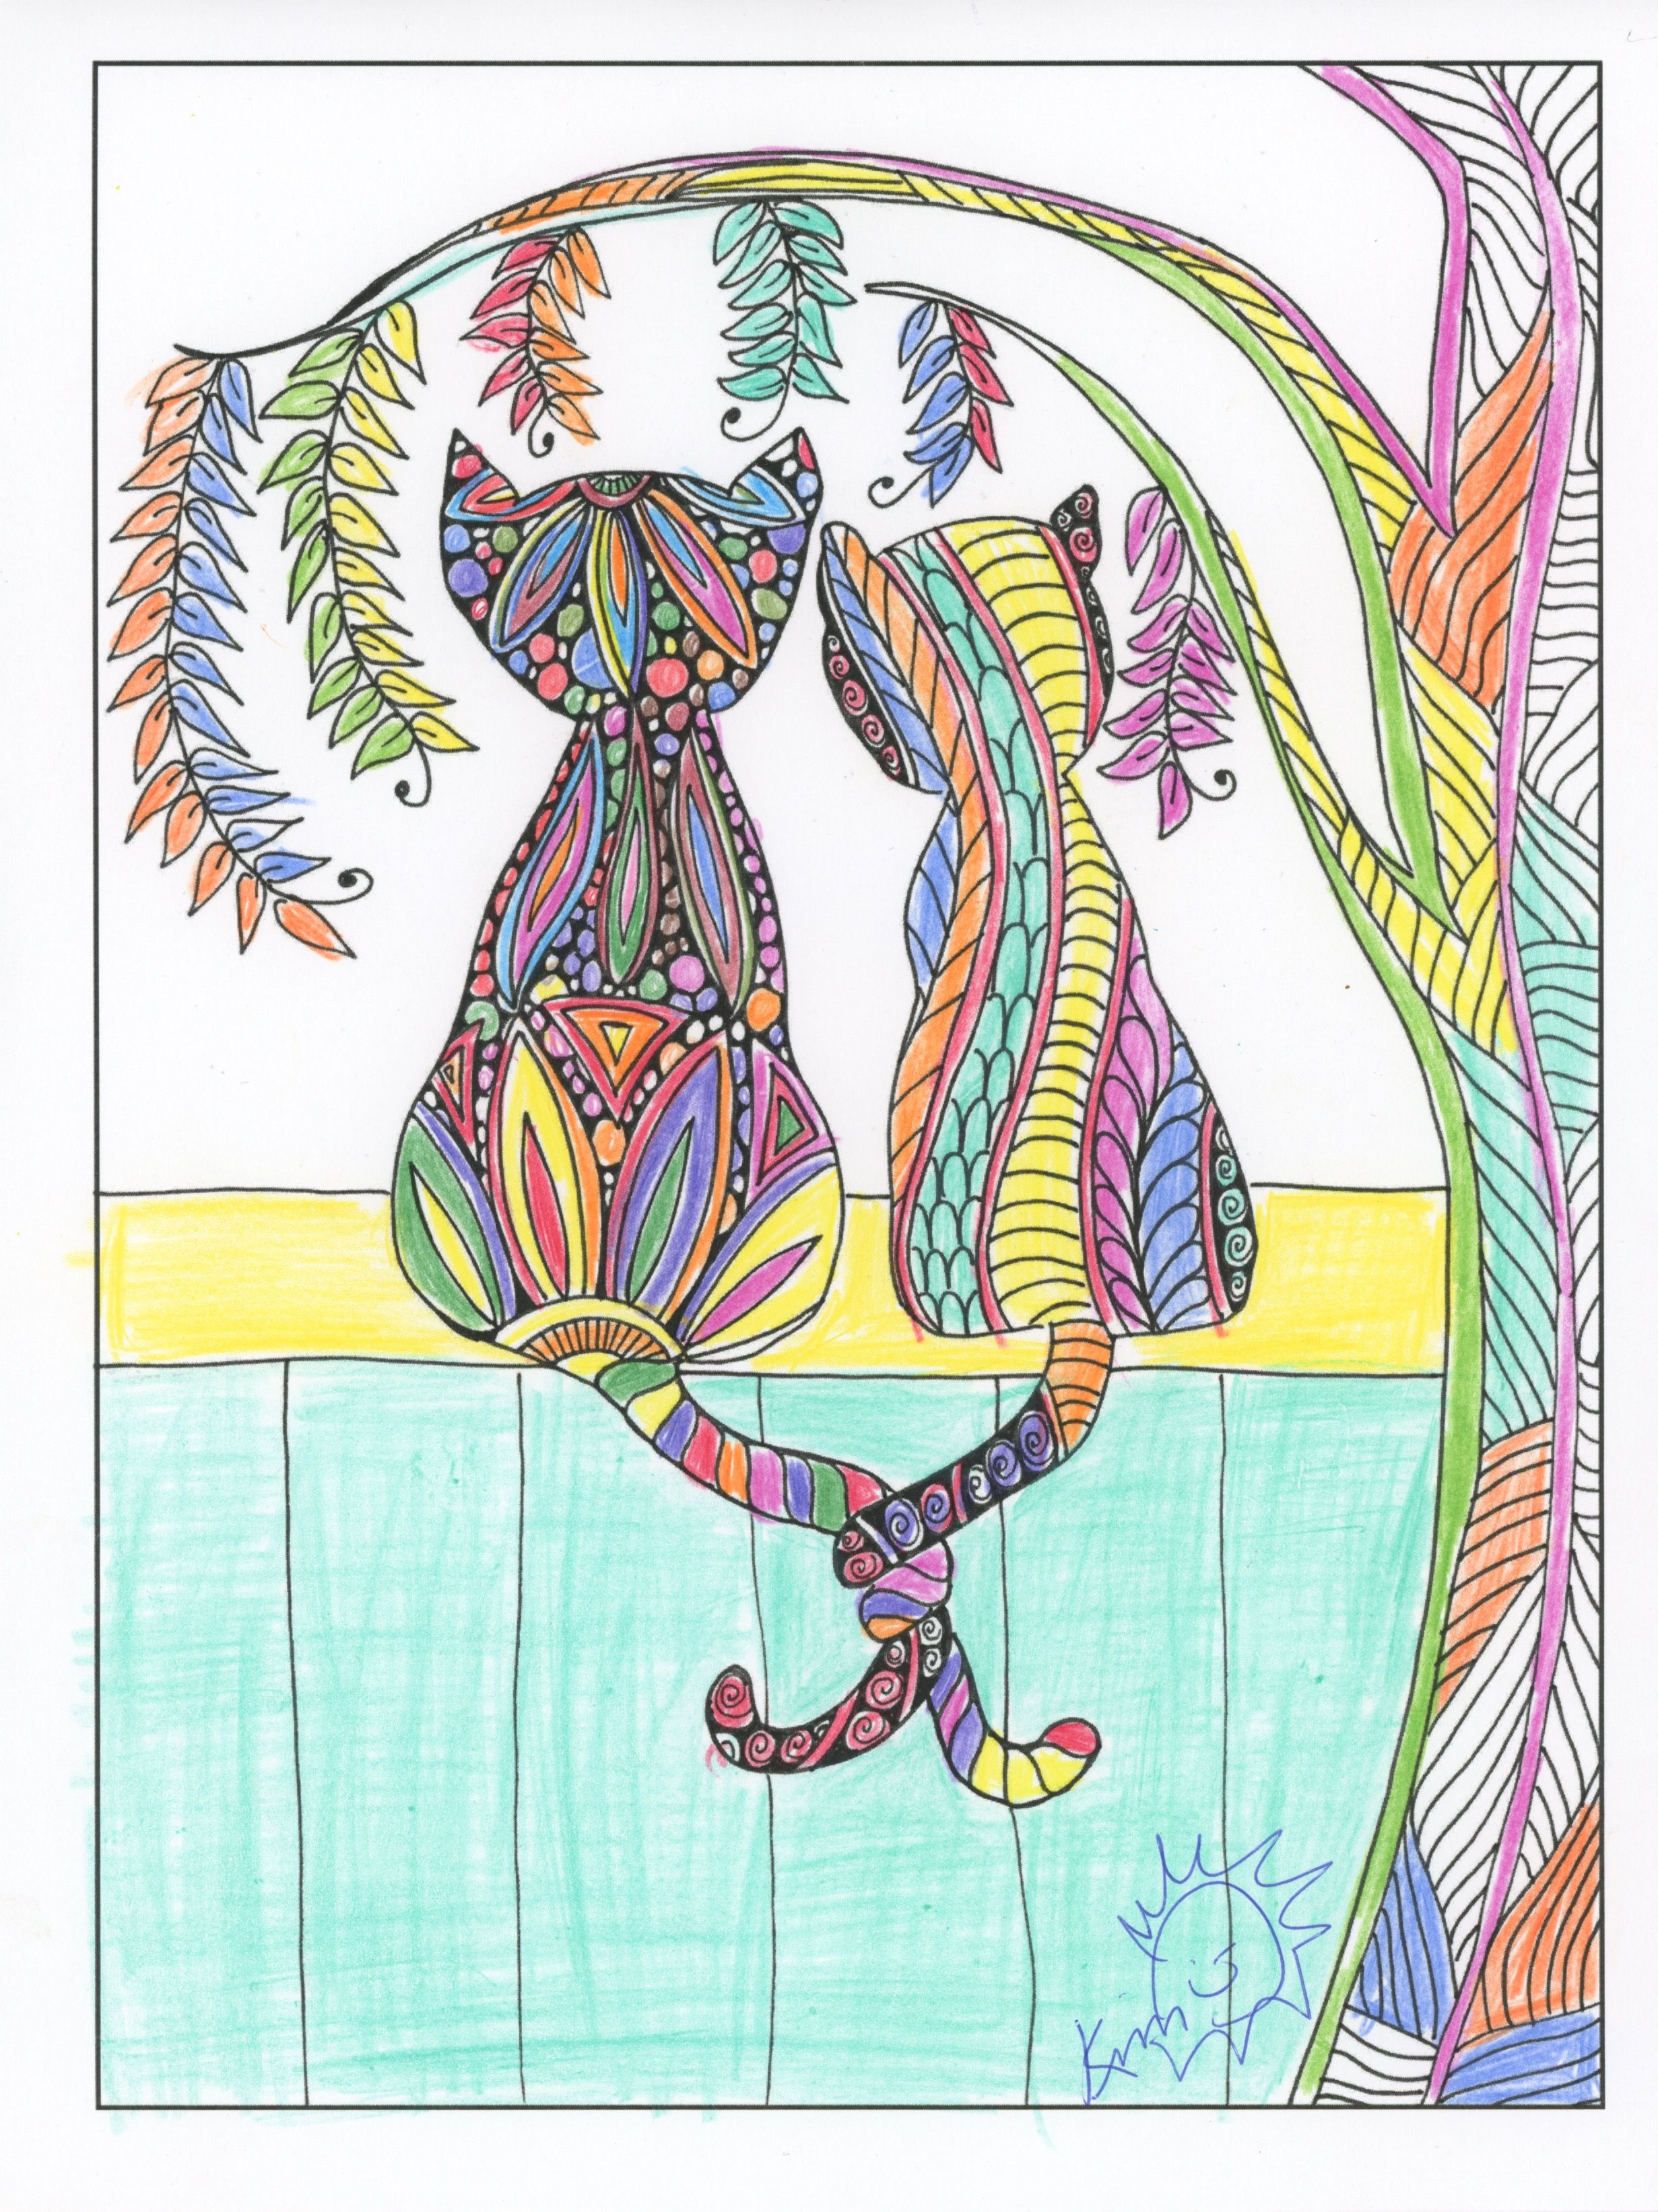 Find This Pin And More On Color Me A New Adventure From The Inkspirations For Recovery Coloring